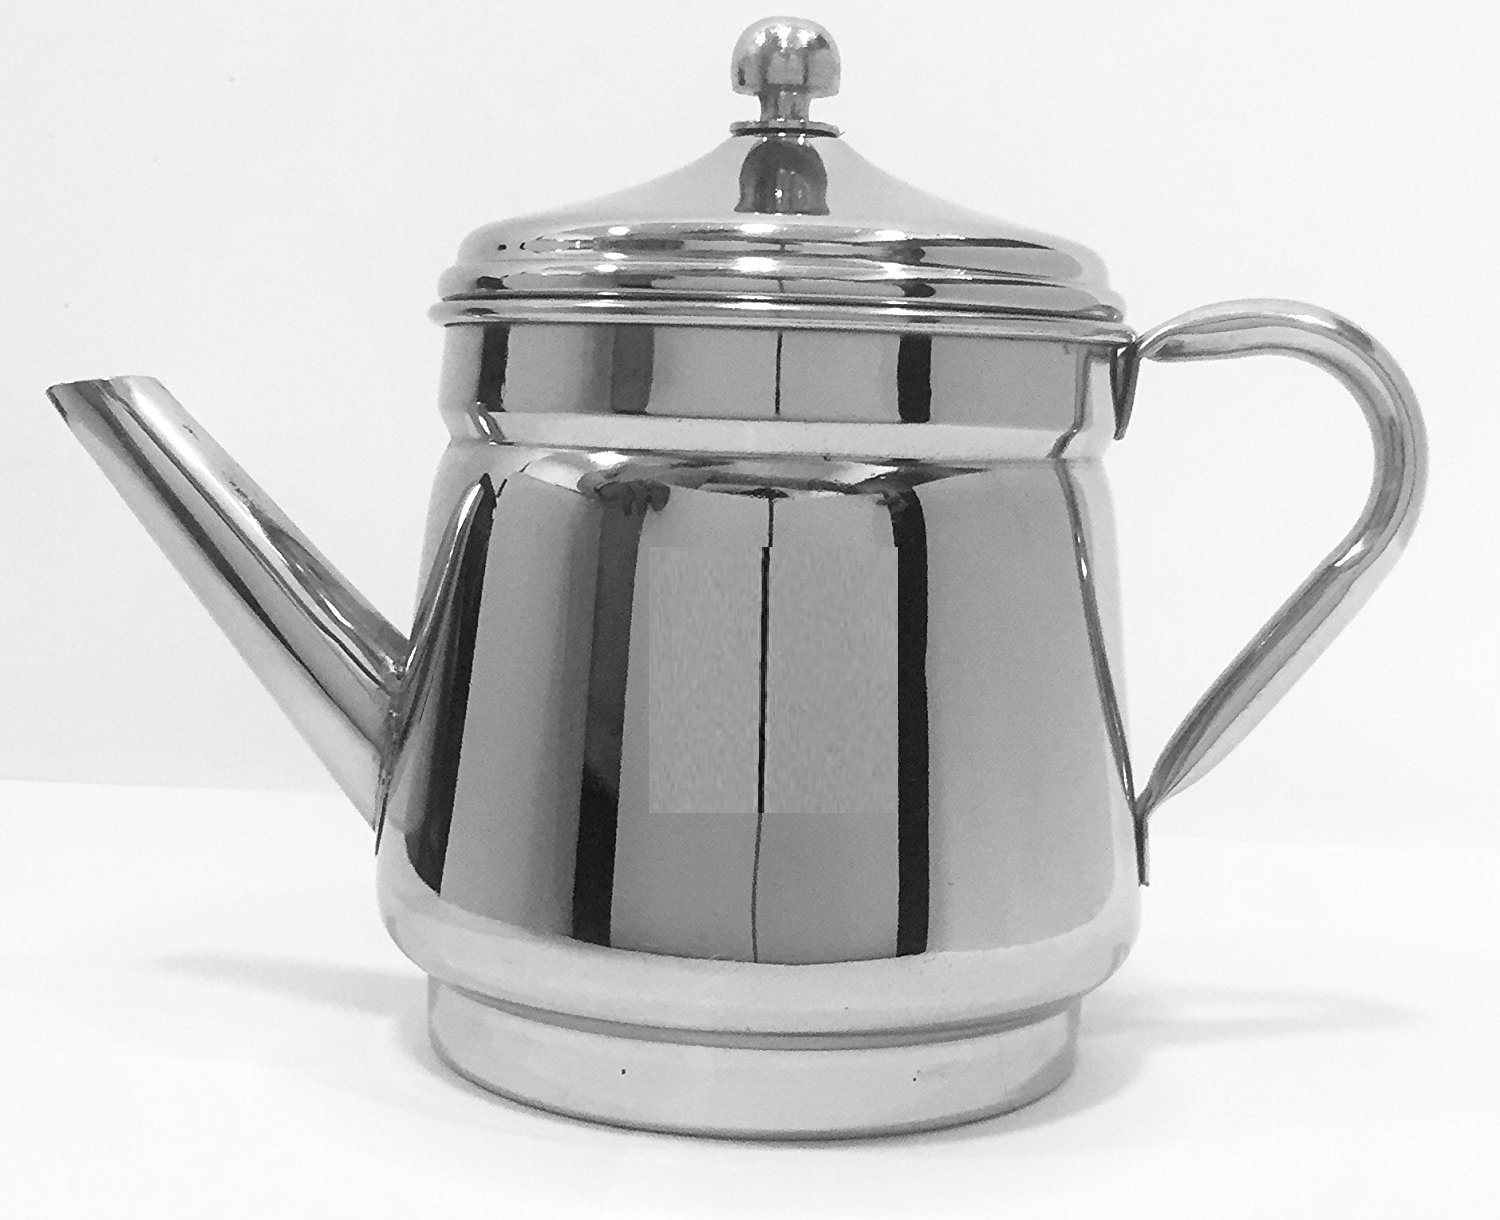 Coffee Kettle Drip Filter (6 CUP) Stainless Steel South Indian Filter Coffee Maker